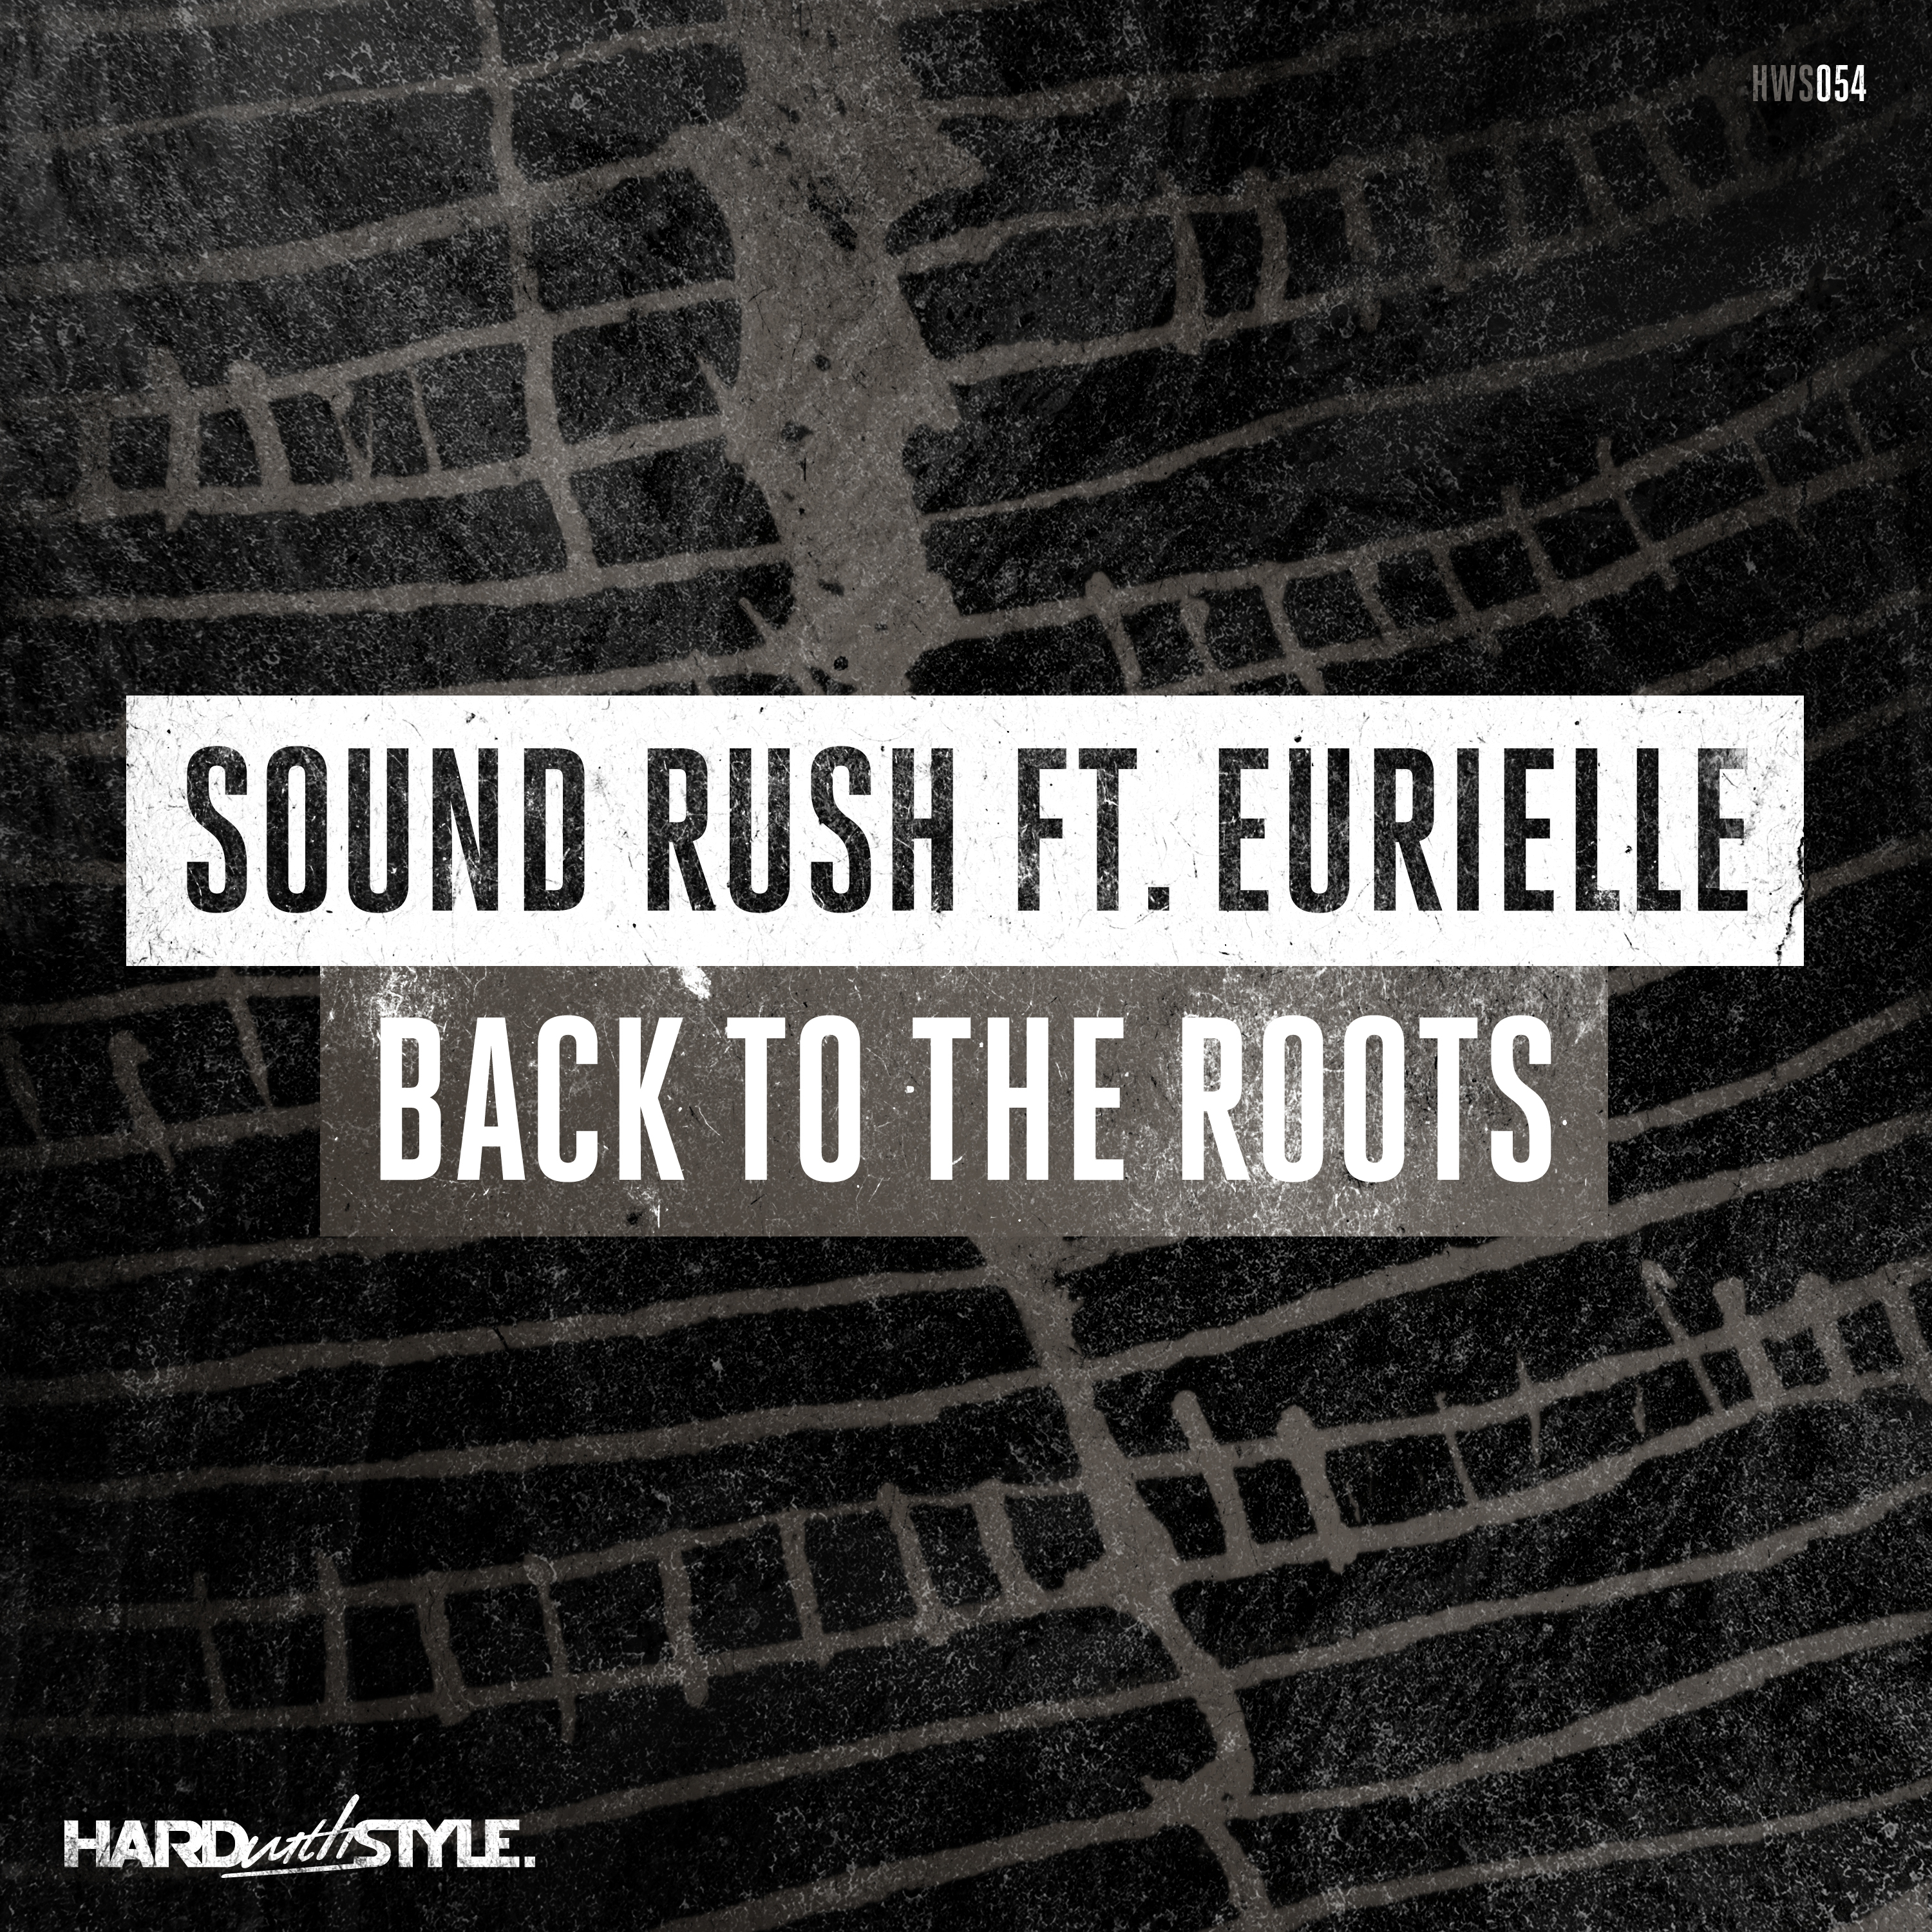 Sound Rush & Eurielle - Back To The Roots [HARD WITH STYLE RECORDS] HWS054